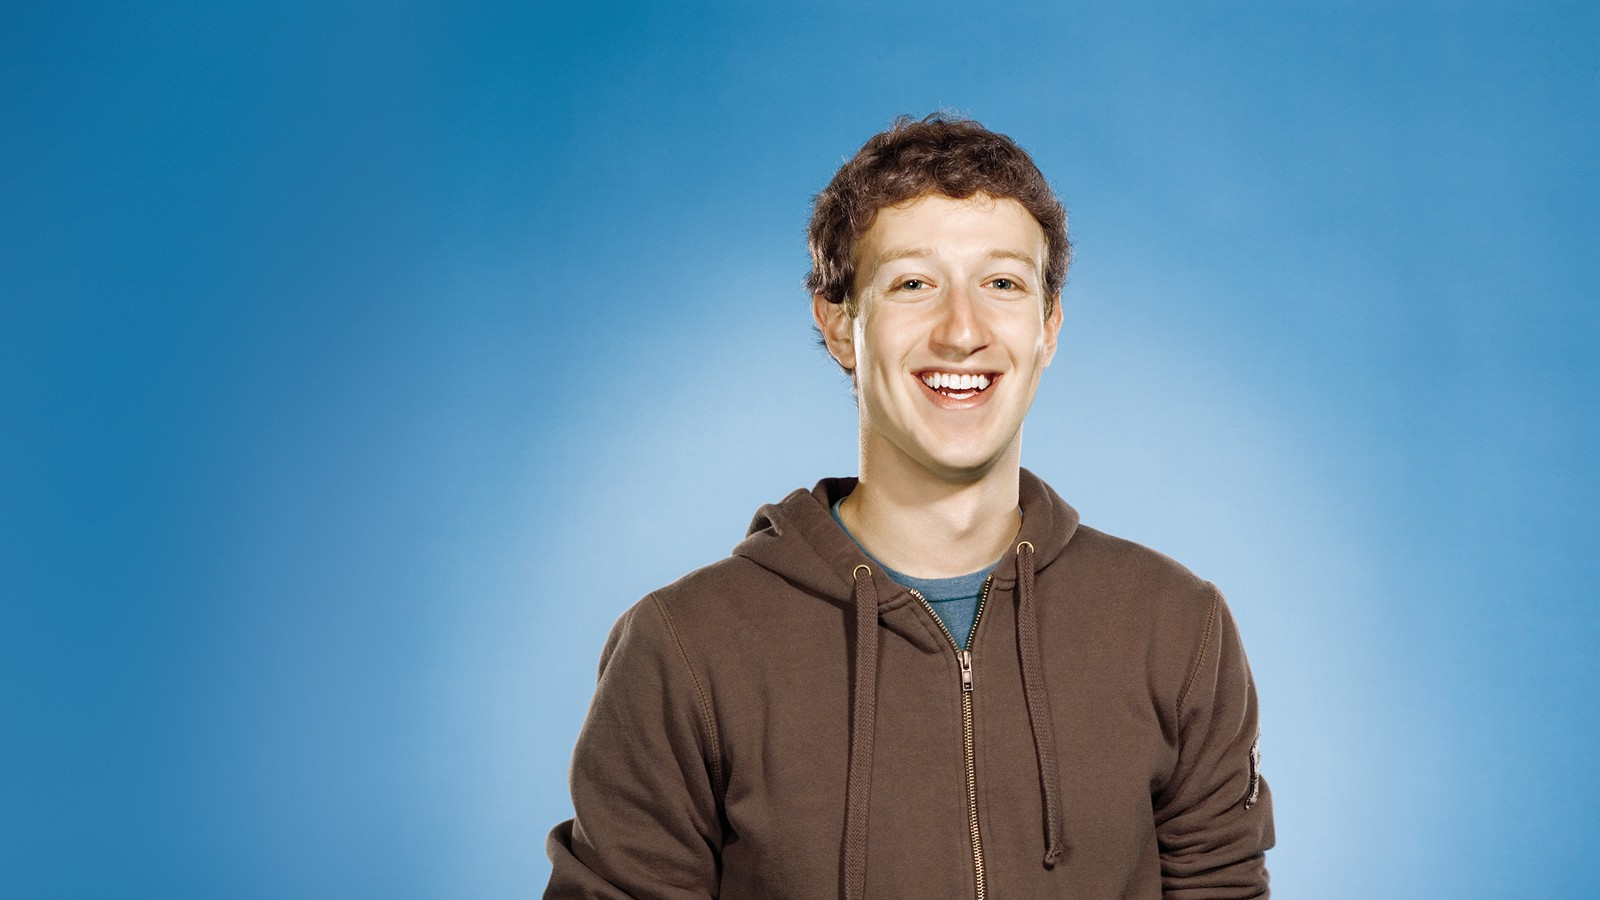 """Mark Zuckerberg:The Hoodie - Love it or hate it, Mark Zuckerberg made it socially acceptable to dress like a scrub at the office. Thanks to Zuck, hoodies now unanimously represent start-up culture, tech disruption and a """"plugged-in and heads down"""" mentality."""